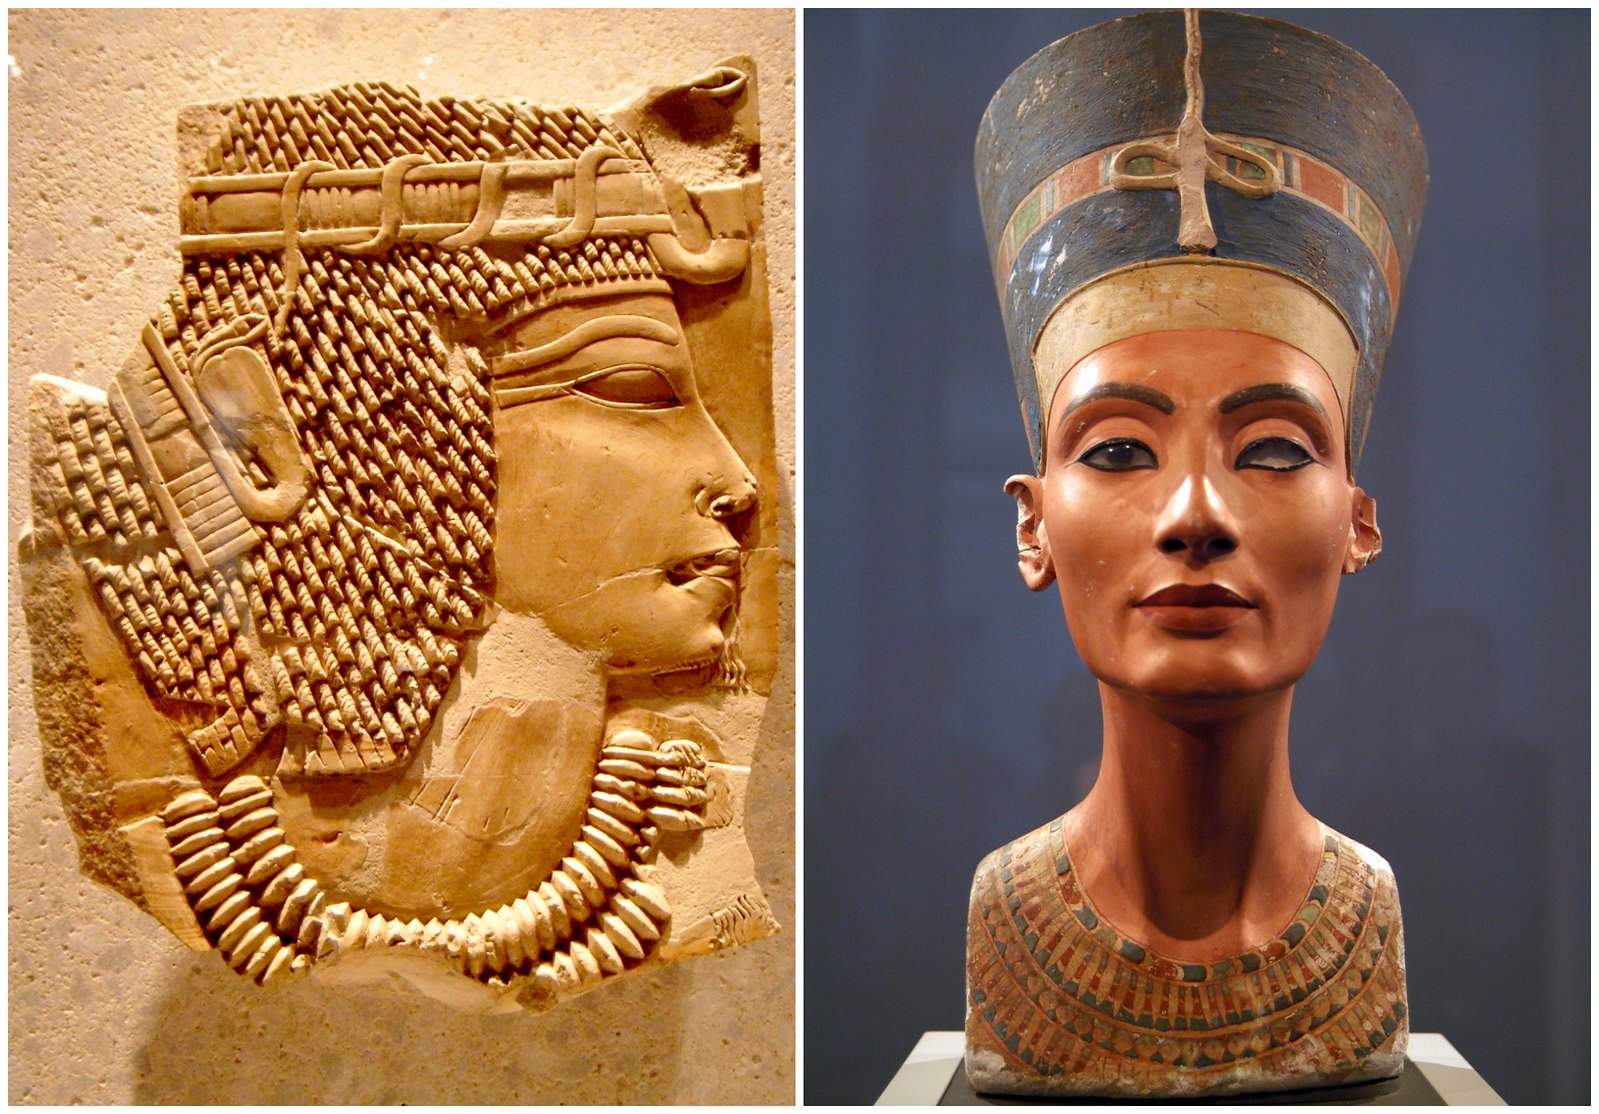 Amenhotep III (left) Credit Sa.hprw and Nefertiti (right). Credit Giovanni